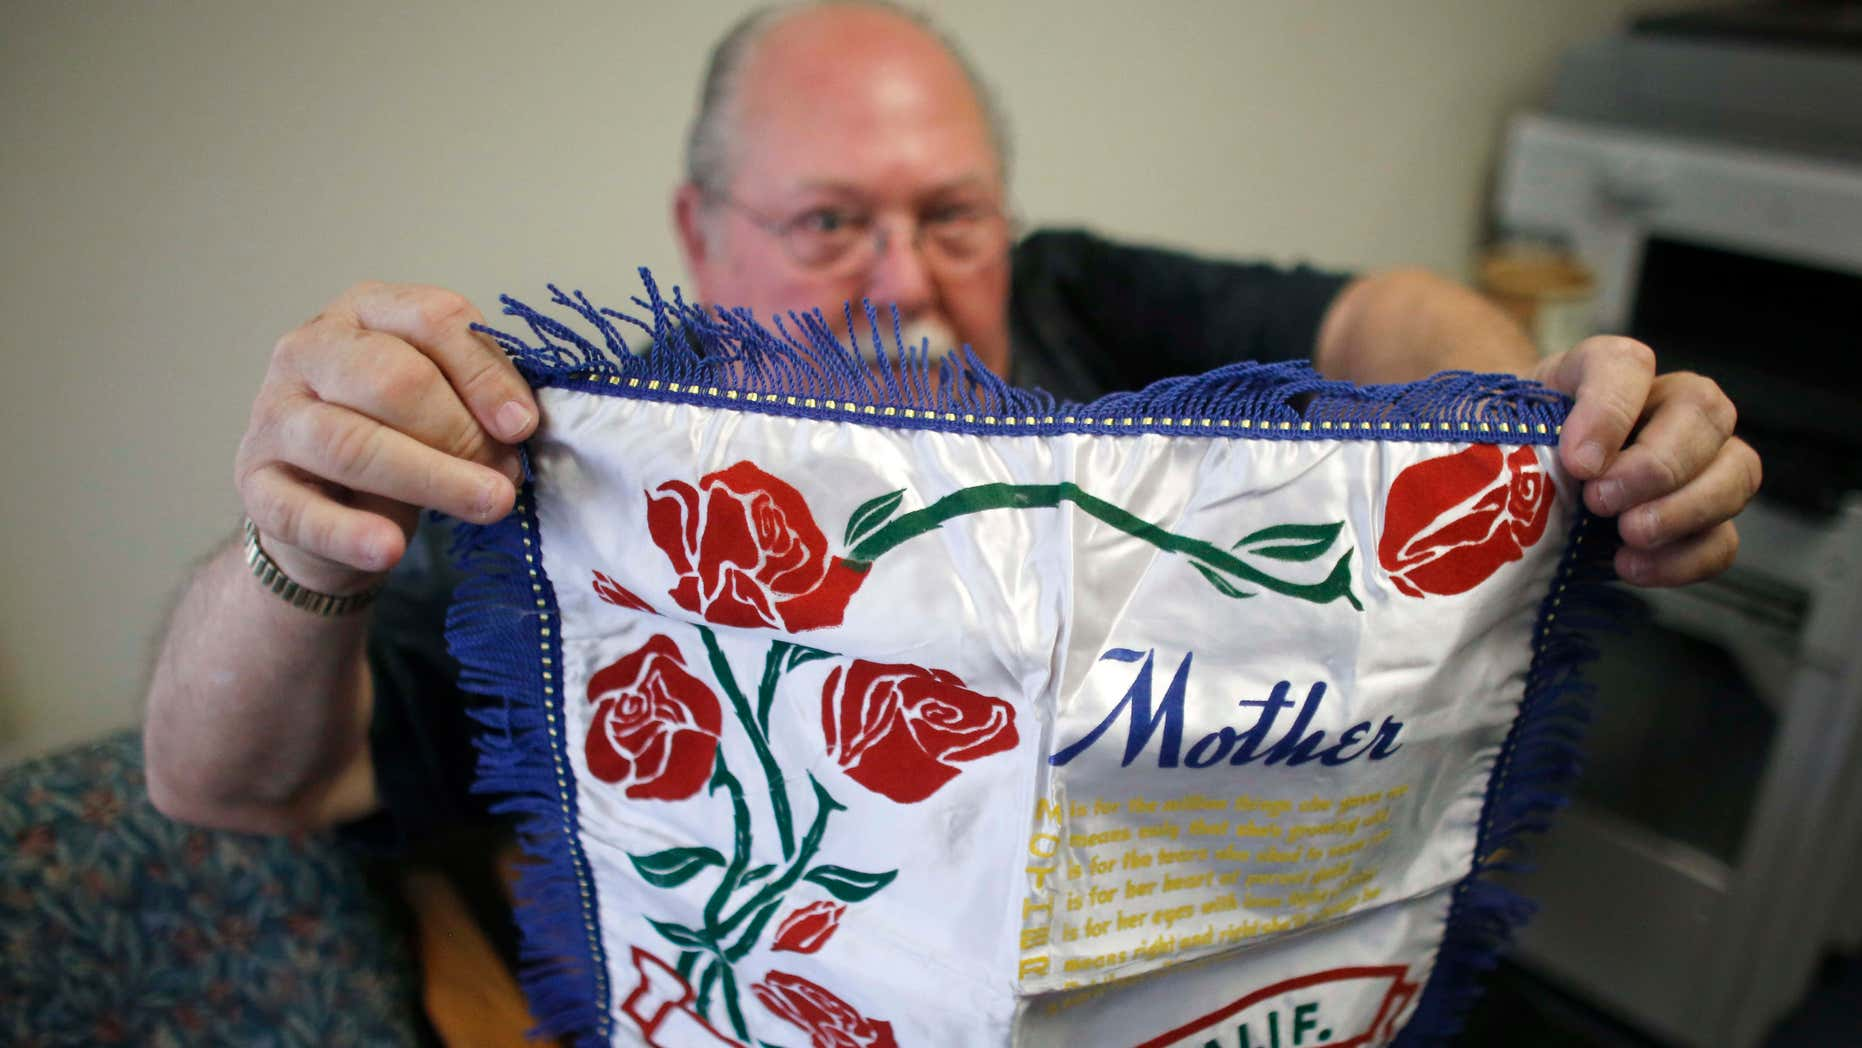 May 5, 2015: Don Lamoureux displays a World War II era pillow sham at a senior center in Millville, Mass., which his son purchased from an online auction site.